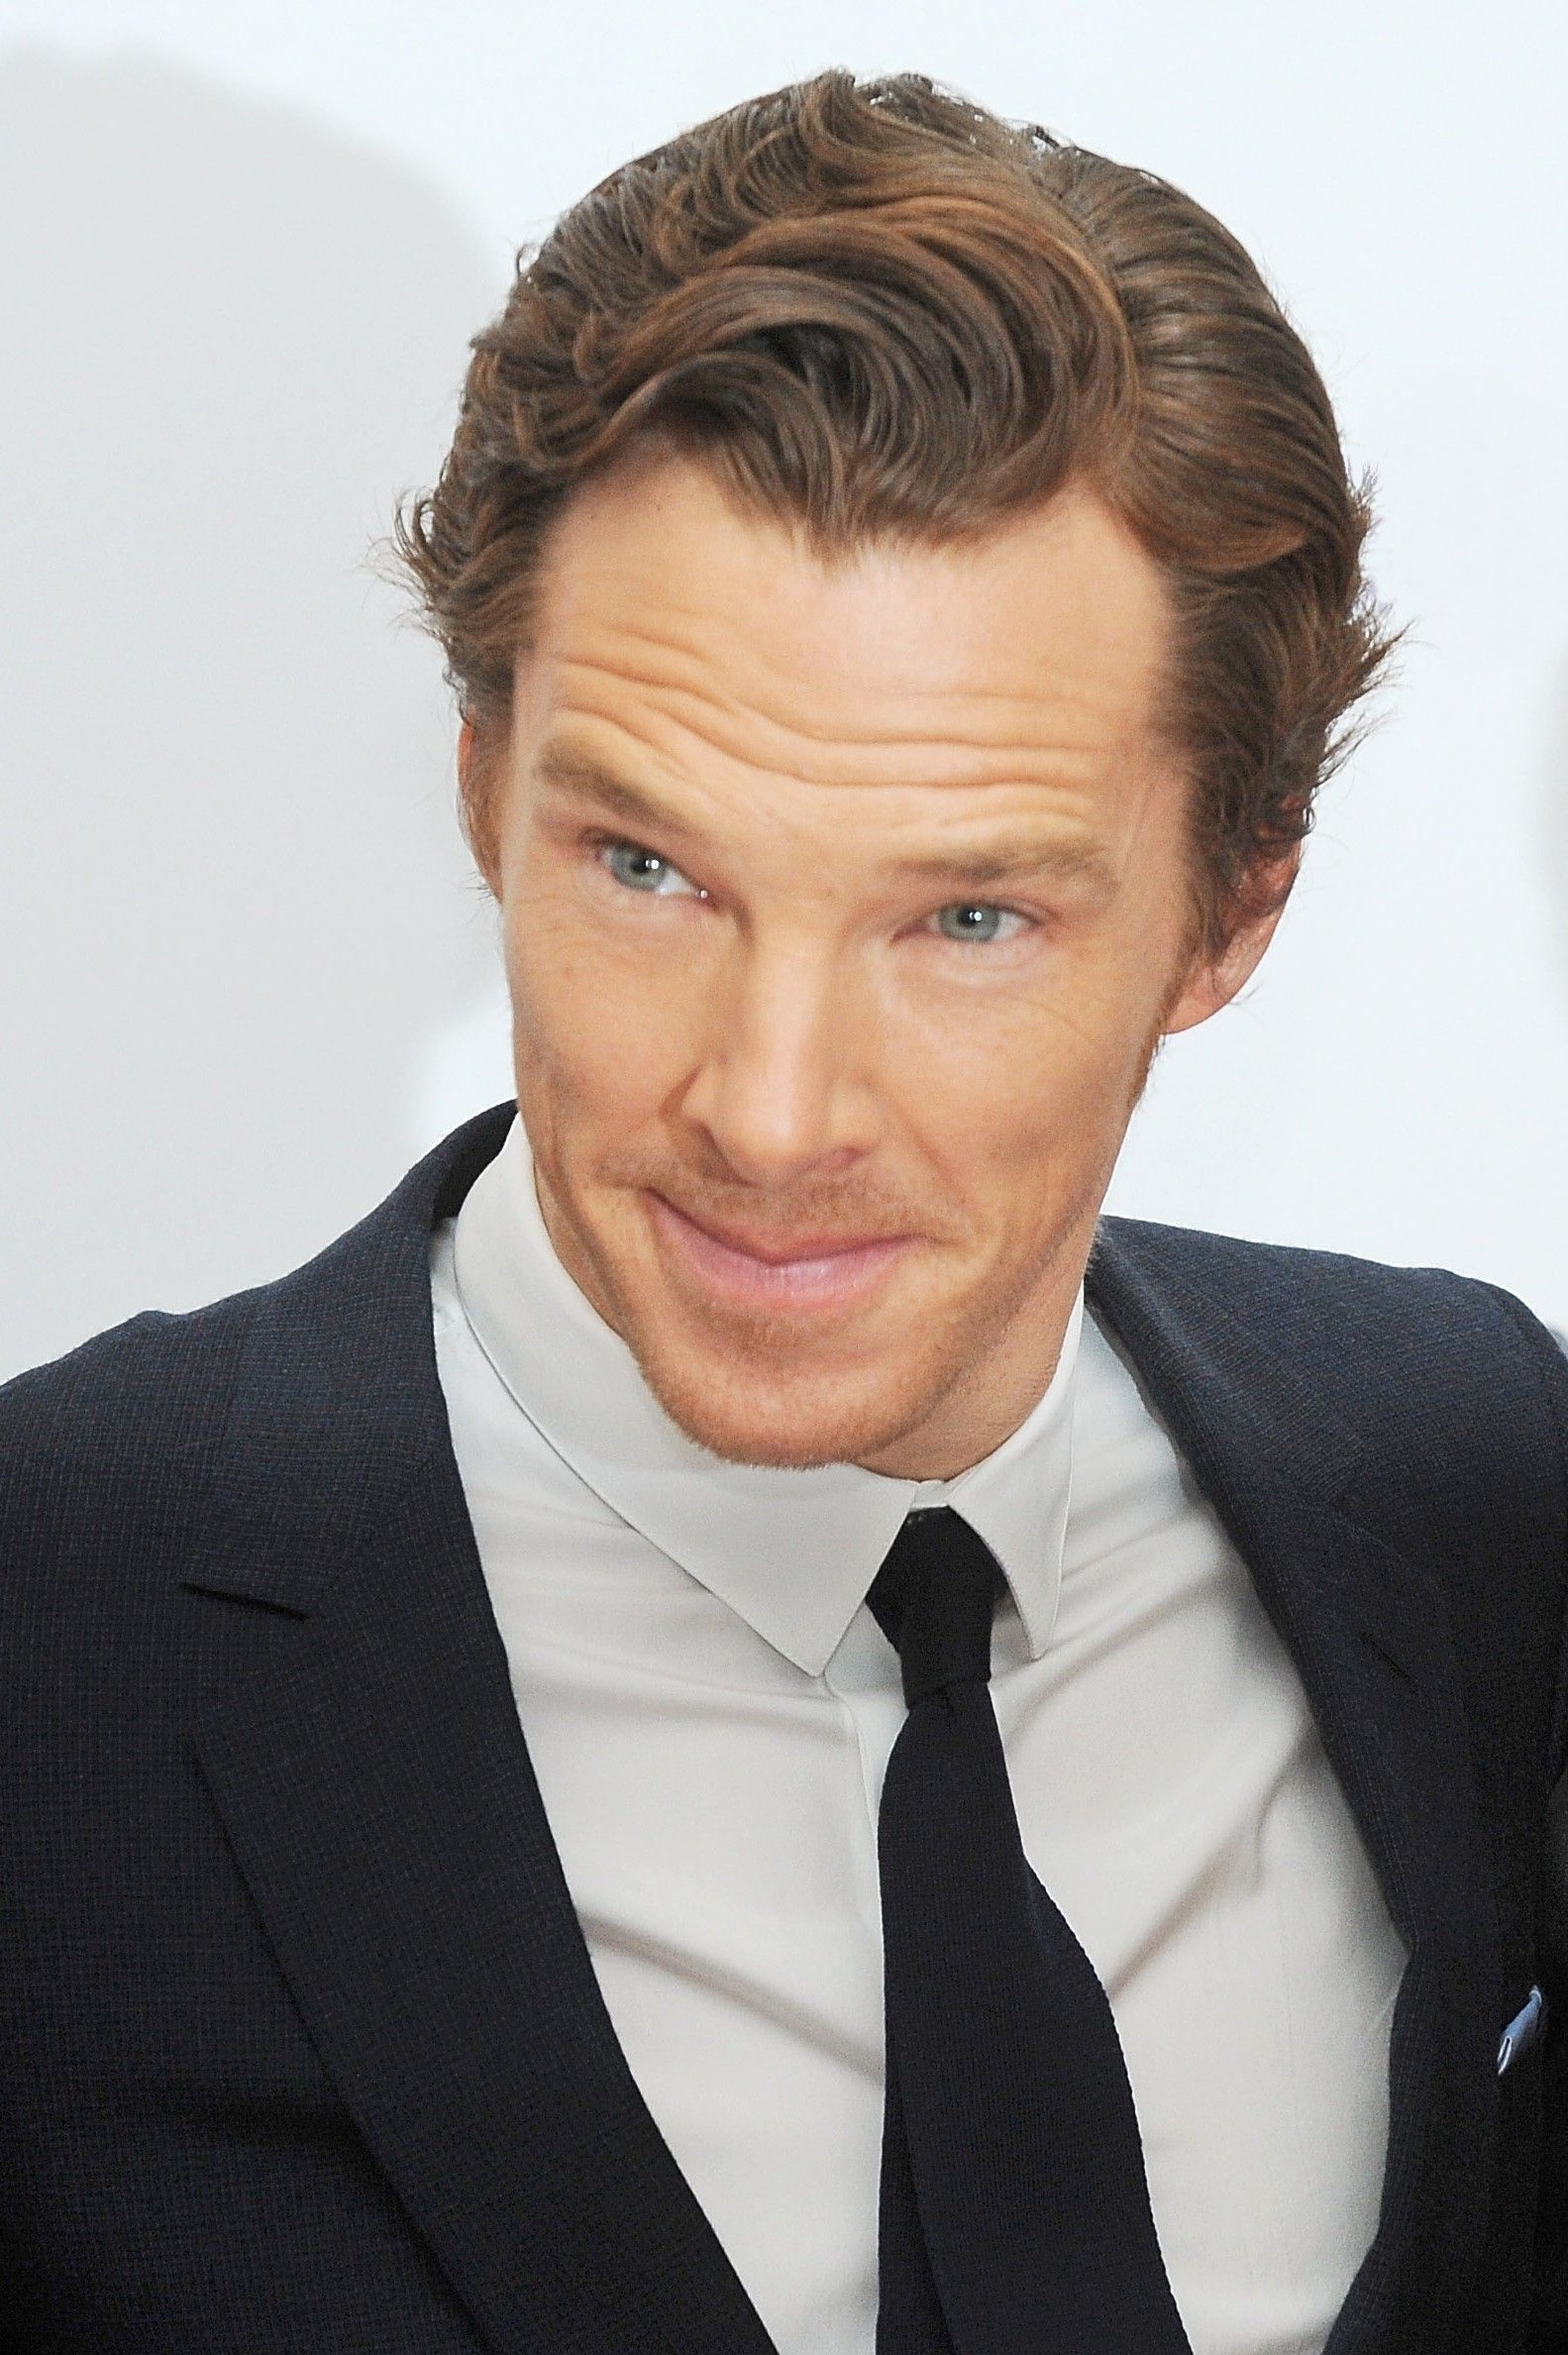 Benedict Cumberbatch, 2015 10 11 - BFI London Film Festival - ' Black Mass ' Premiere - Photocall by Dave J Hogan